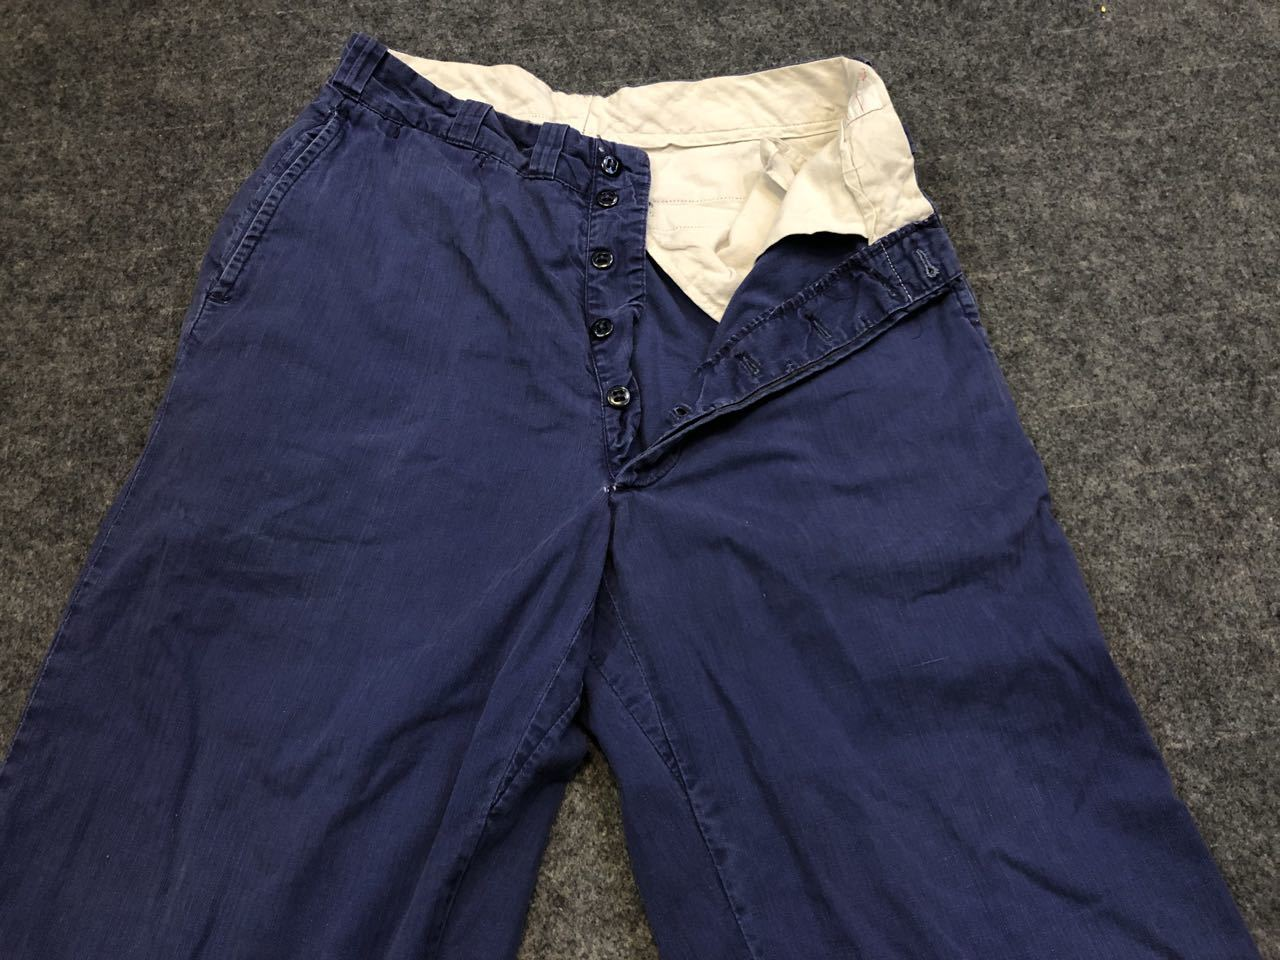 アメリカ仕入れ情報#34 3/14入荷!50s all cotton  HBT NAVY WORK PANTS!_c0144020_09042680.jpg